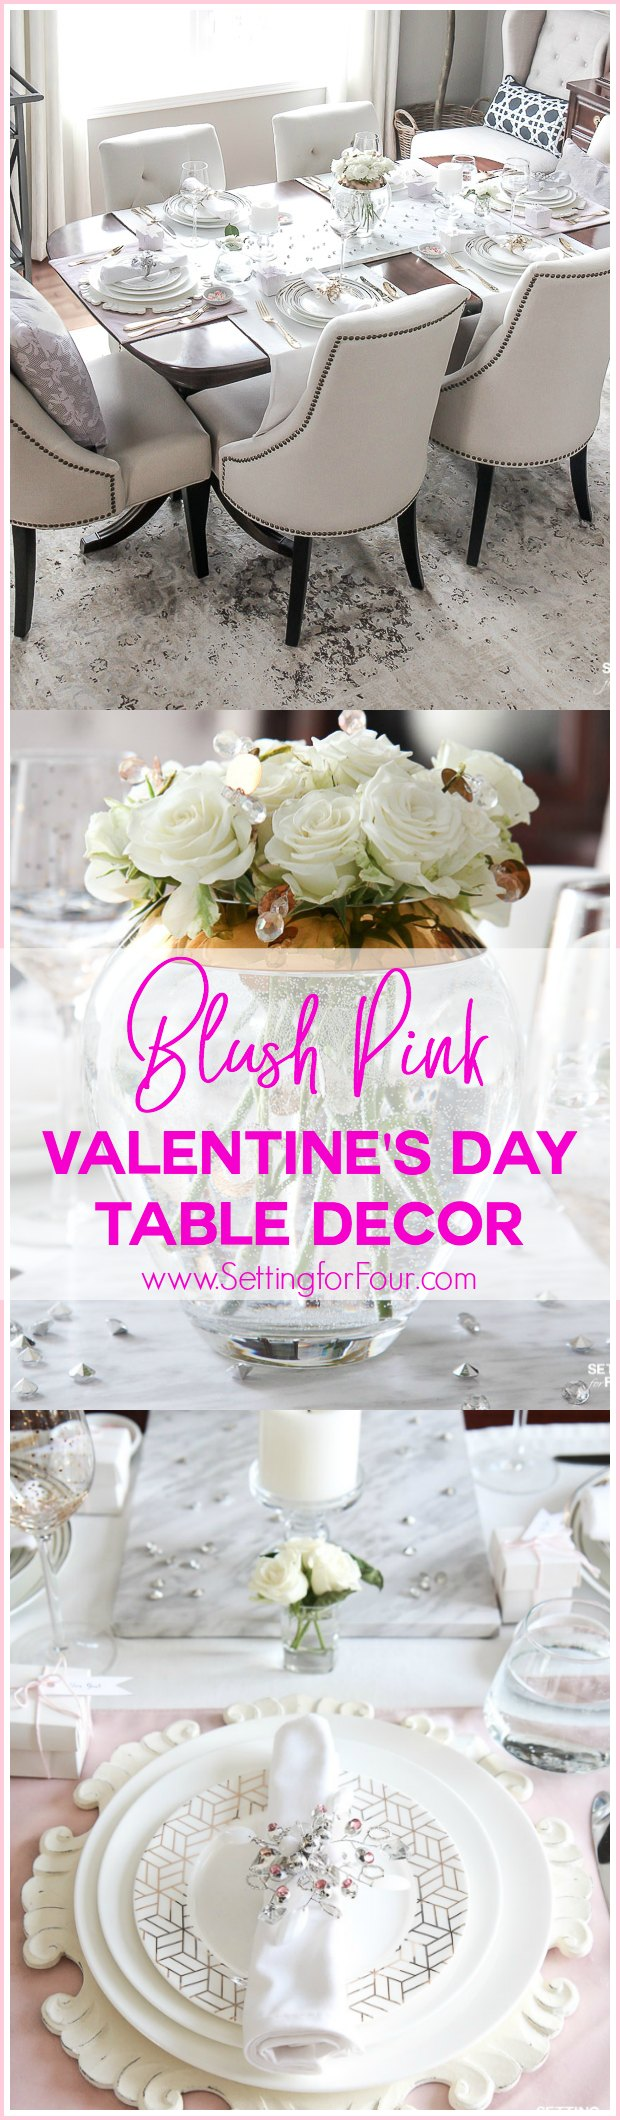 Blush Pink Valentines Day Table Decorations Setting For Four